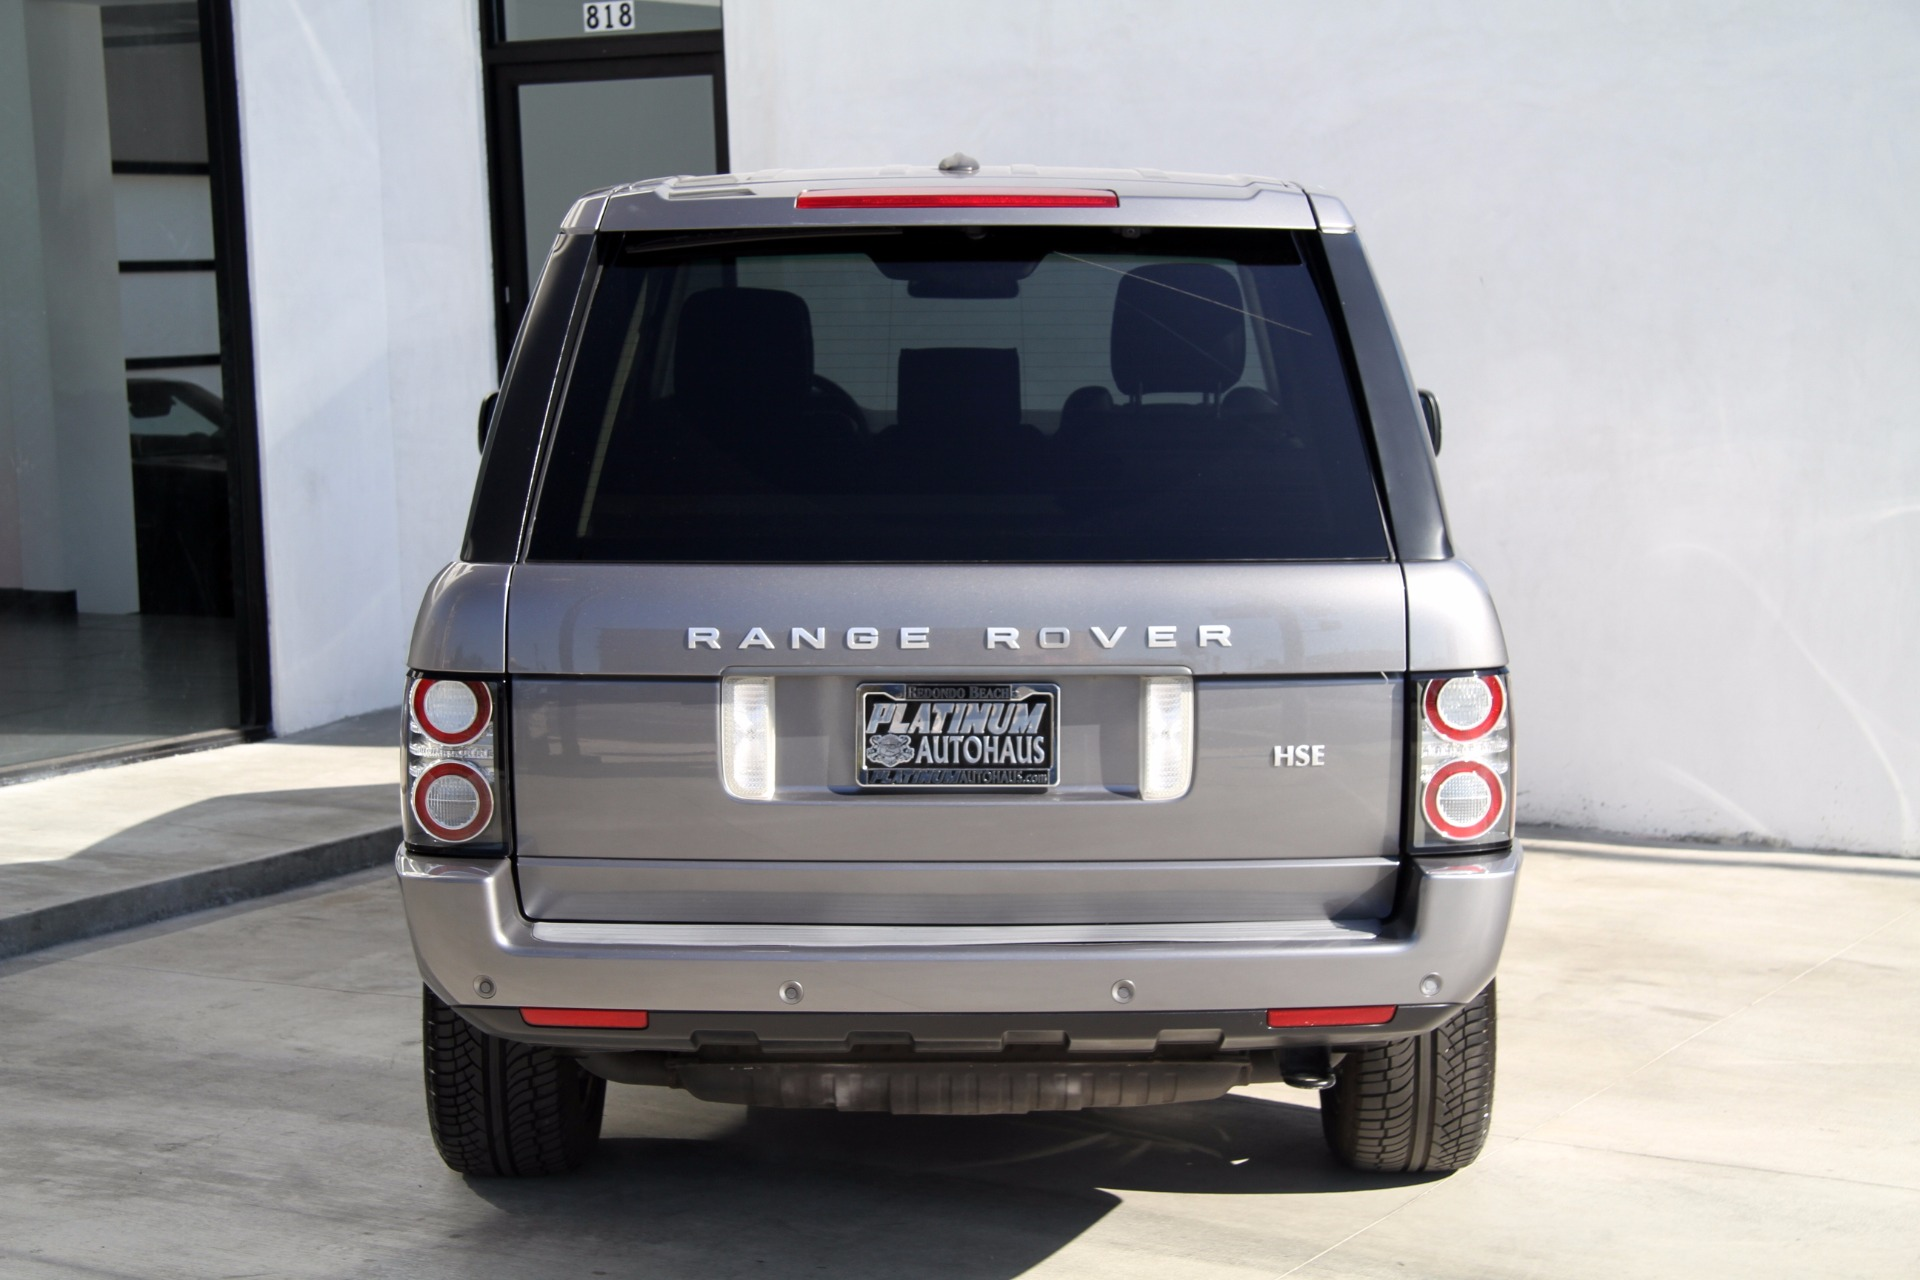 2011 land rover range rover hse luxury stock 6048 for sale near redondo beach ca ca land - Land rover garage near me ...